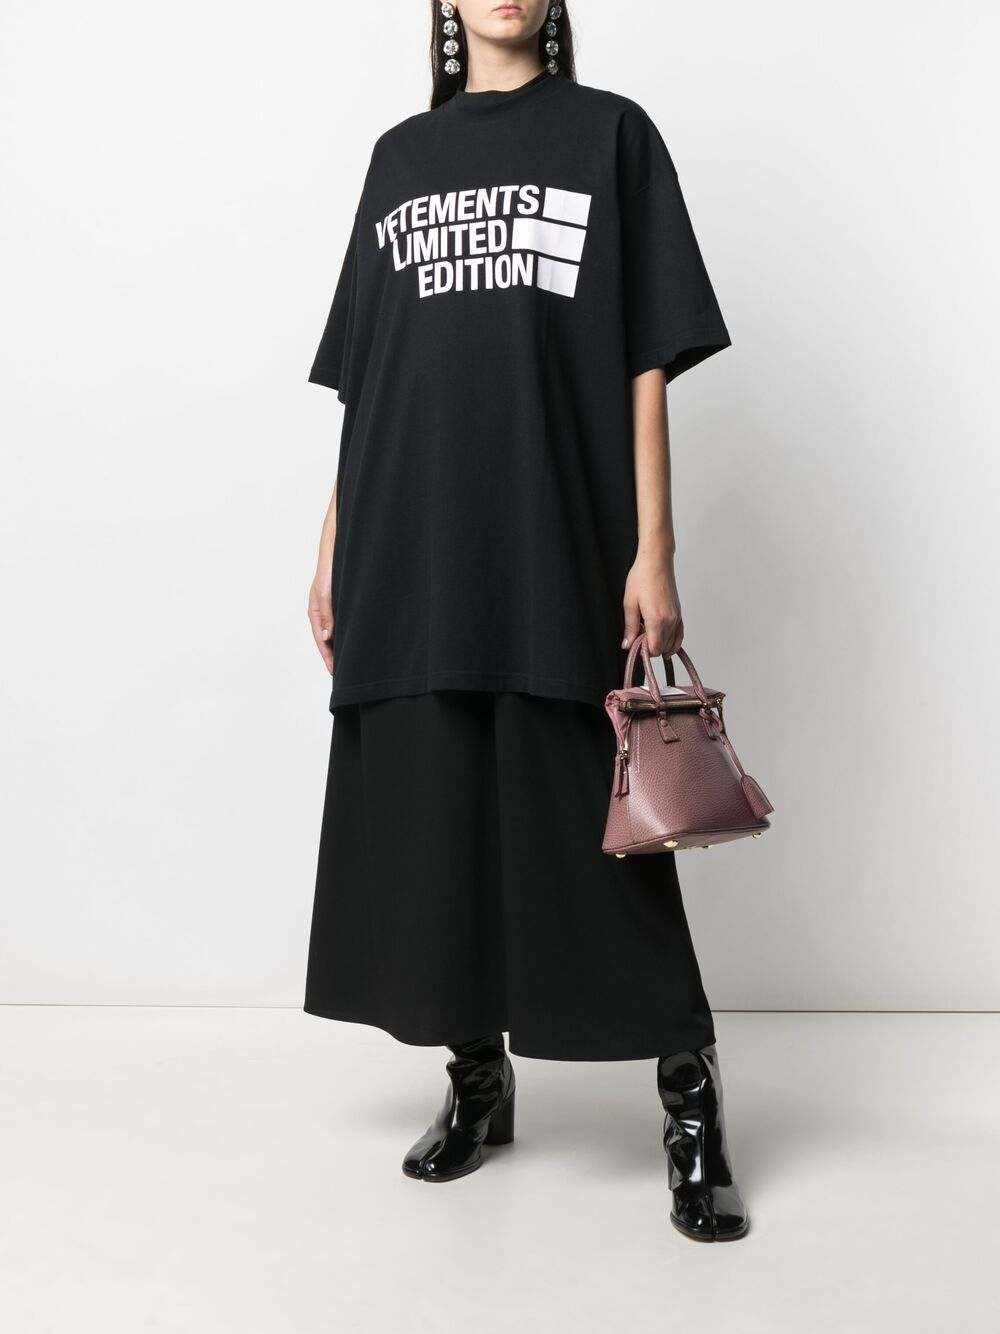 VETEMENTS UNISEX BIG LOGO LIMITED EDITION T-SHIRT